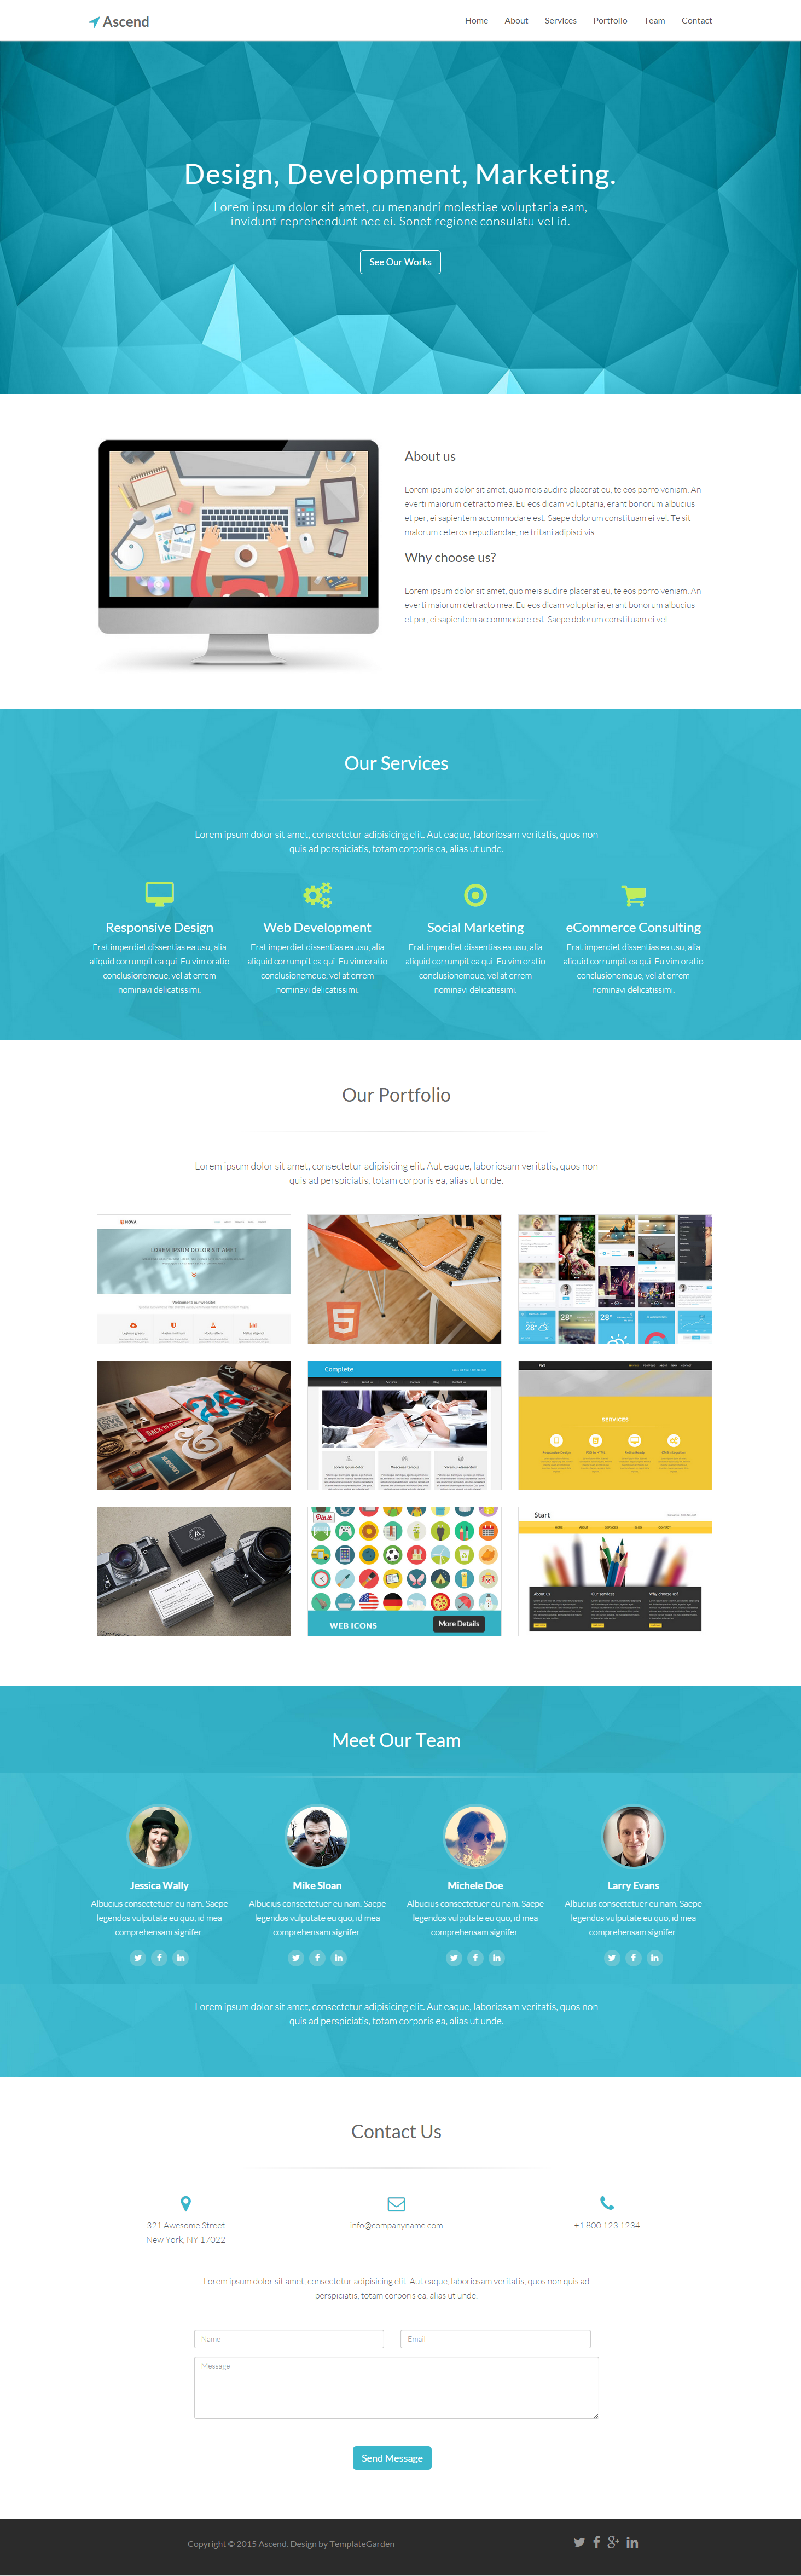 Ascend – Free One Page Bootstrap Template | Free Creative Agency ...